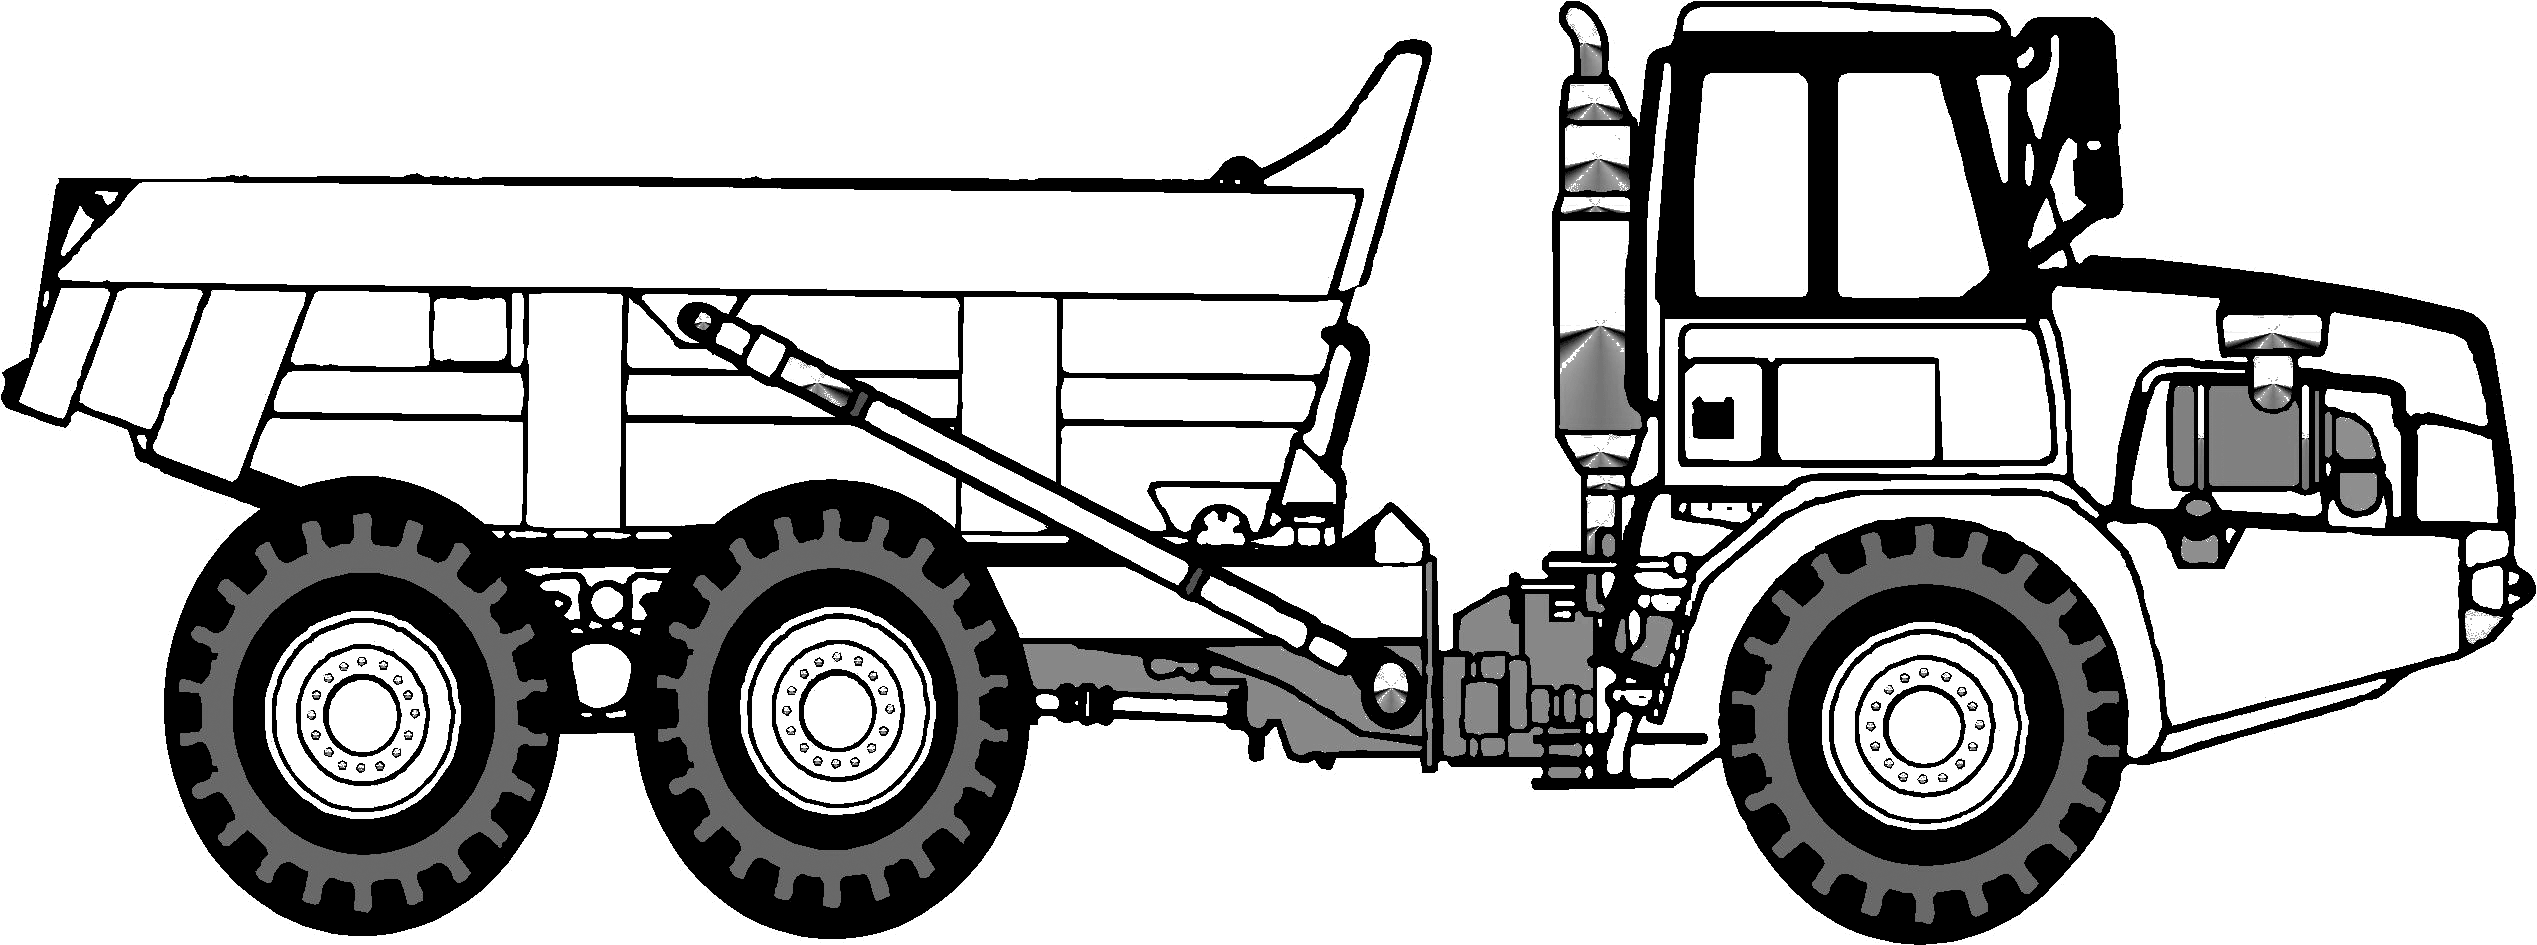 Articulated Vehicles Clipart 20 Free Cliparts